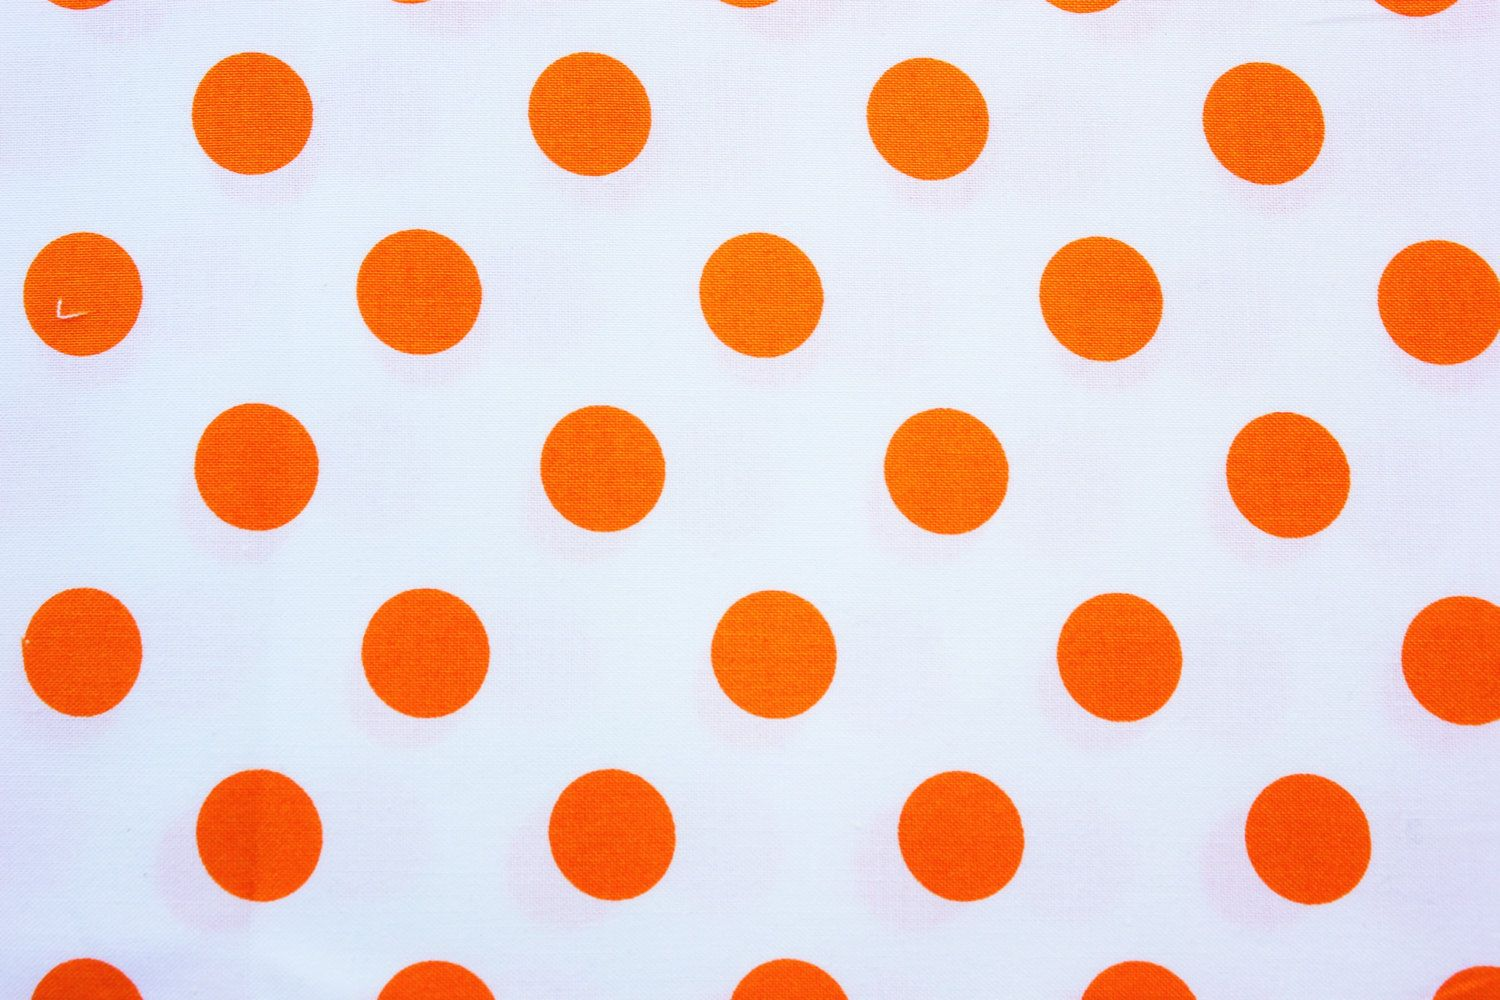 #PolkaDot #Fabric / #DearStella / Medium Size Dot /White Orange / #Cotton / #Sewing #Quilting Patchwork #Dressmaking #Supplies / Half Metre by TwoChubbyRabbits on Etsy